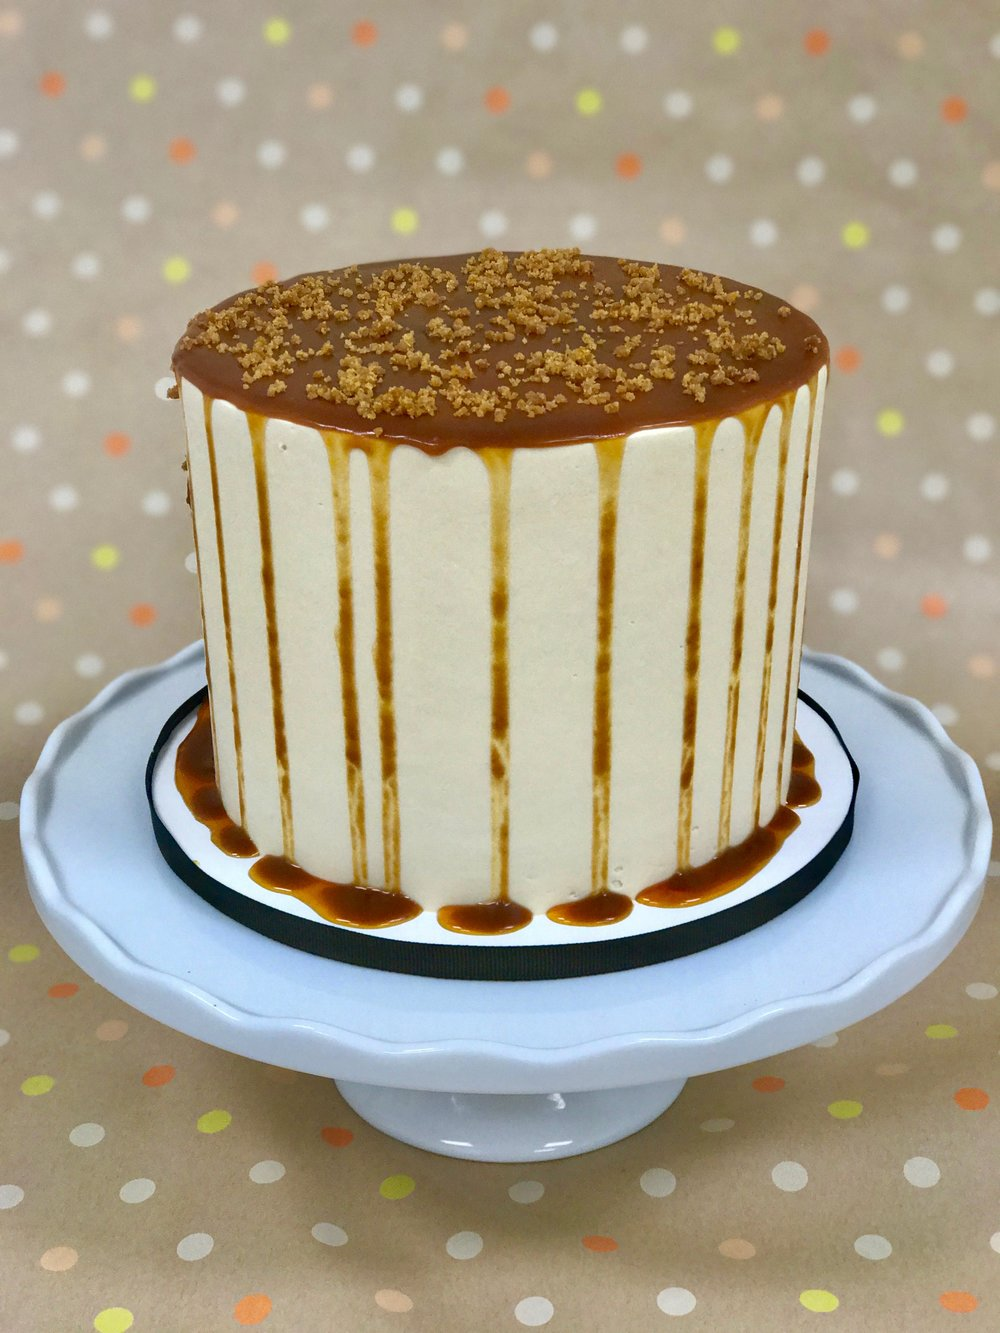 Salted Caramel Toffee - Cake: ToffeeFilling: Salted Caramel Swiss Meringue ButtercreamFrosting: Salted Caramel Swiss Meringue Buttercream, Salted Caramel Sauce and Toffee Bits